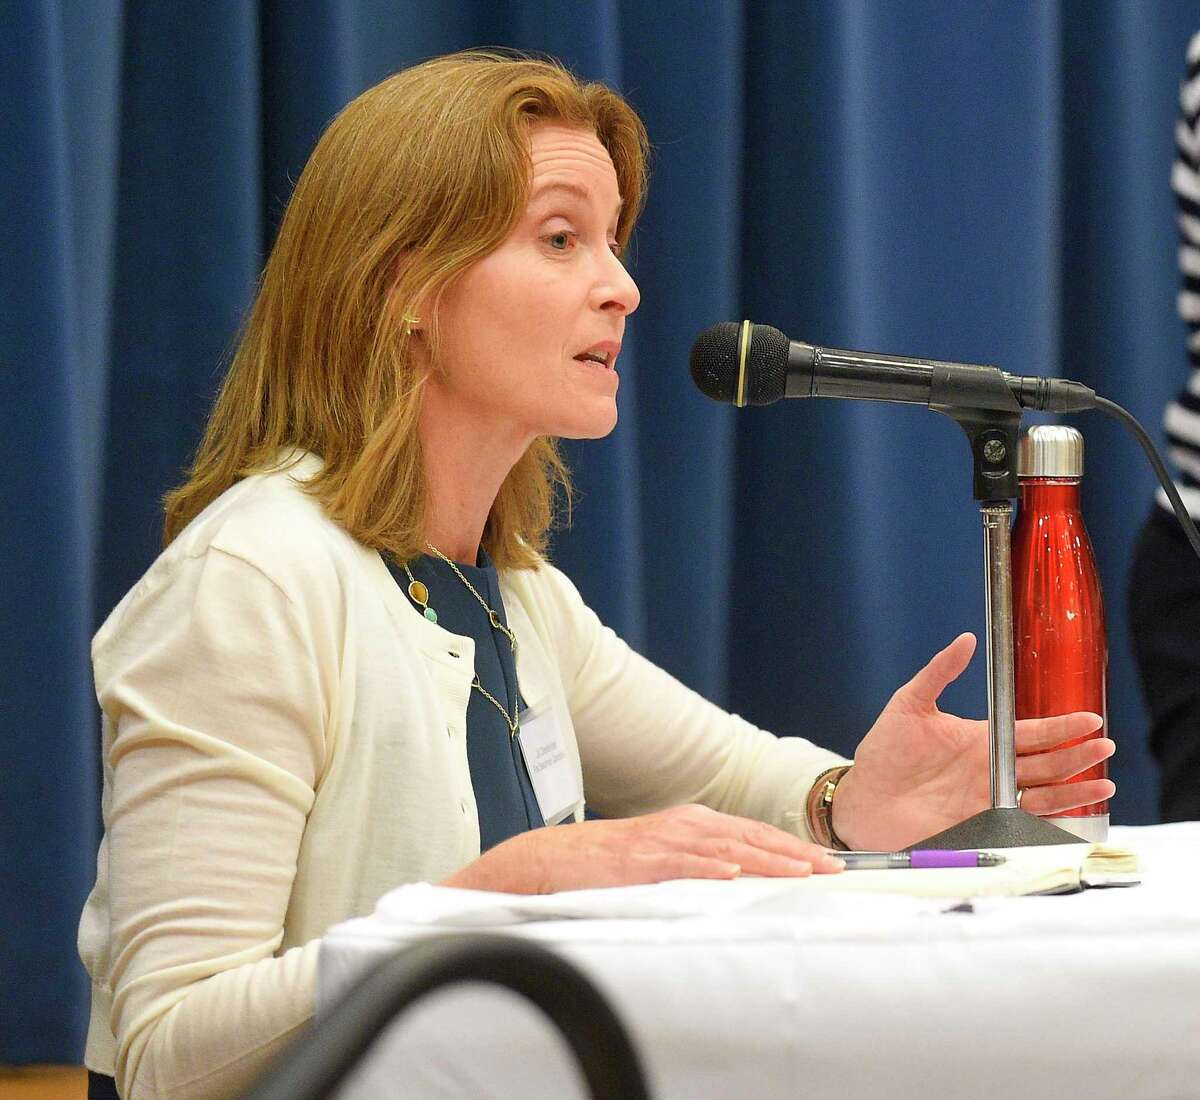 Selectperson Jill Oberlander is calling for the Board of Selectmen to adopt non-gender specific terms. There will be further discussion of her proposal.